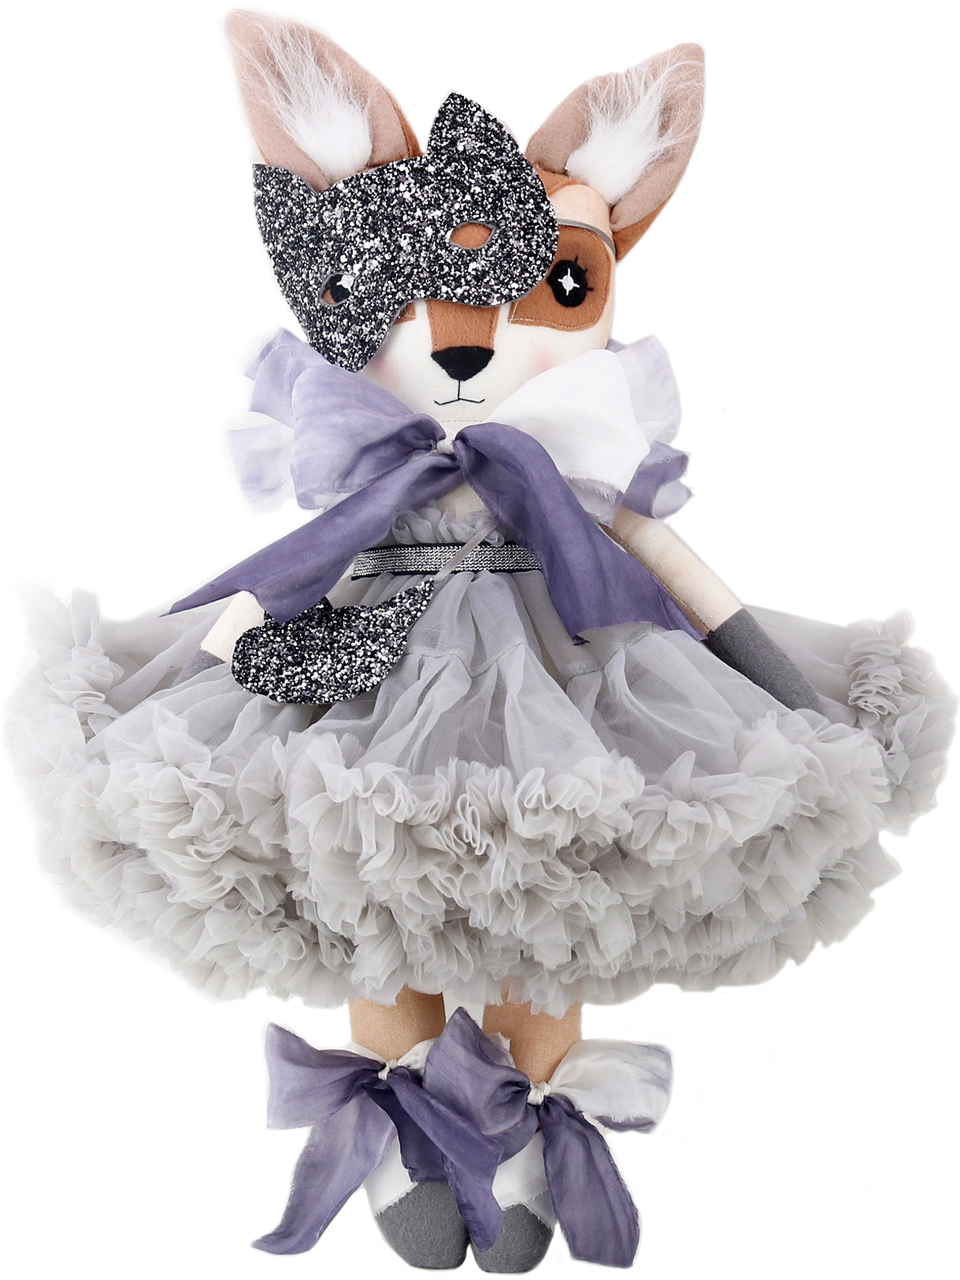 thicket-and-thimble-heirloom-doll-fifi-fox-1__15361.1542579664.jpg